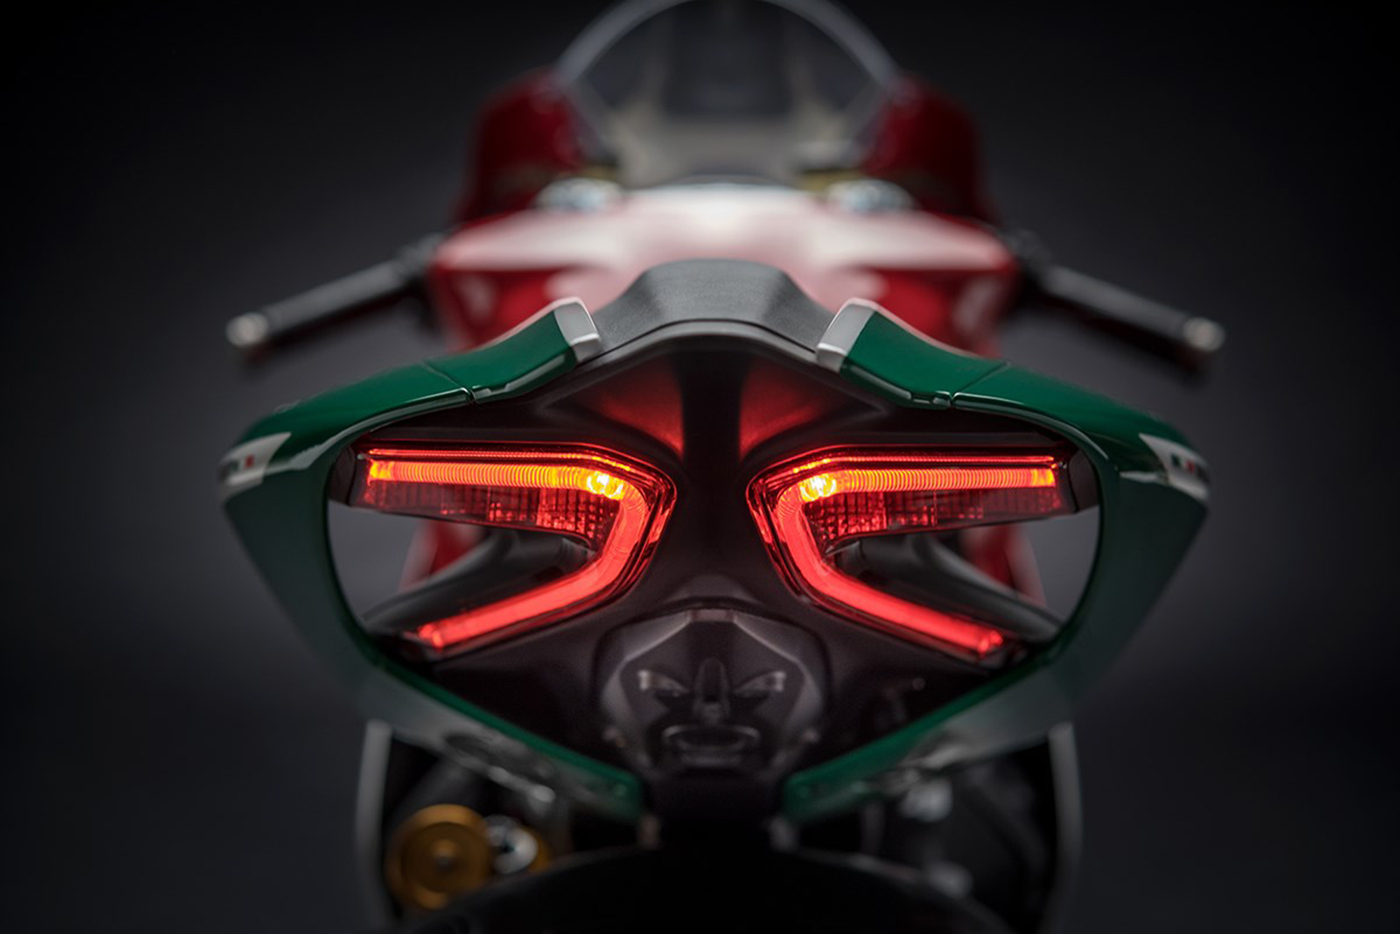 ducati-1299-panigale-r-final-edition-22.jpg